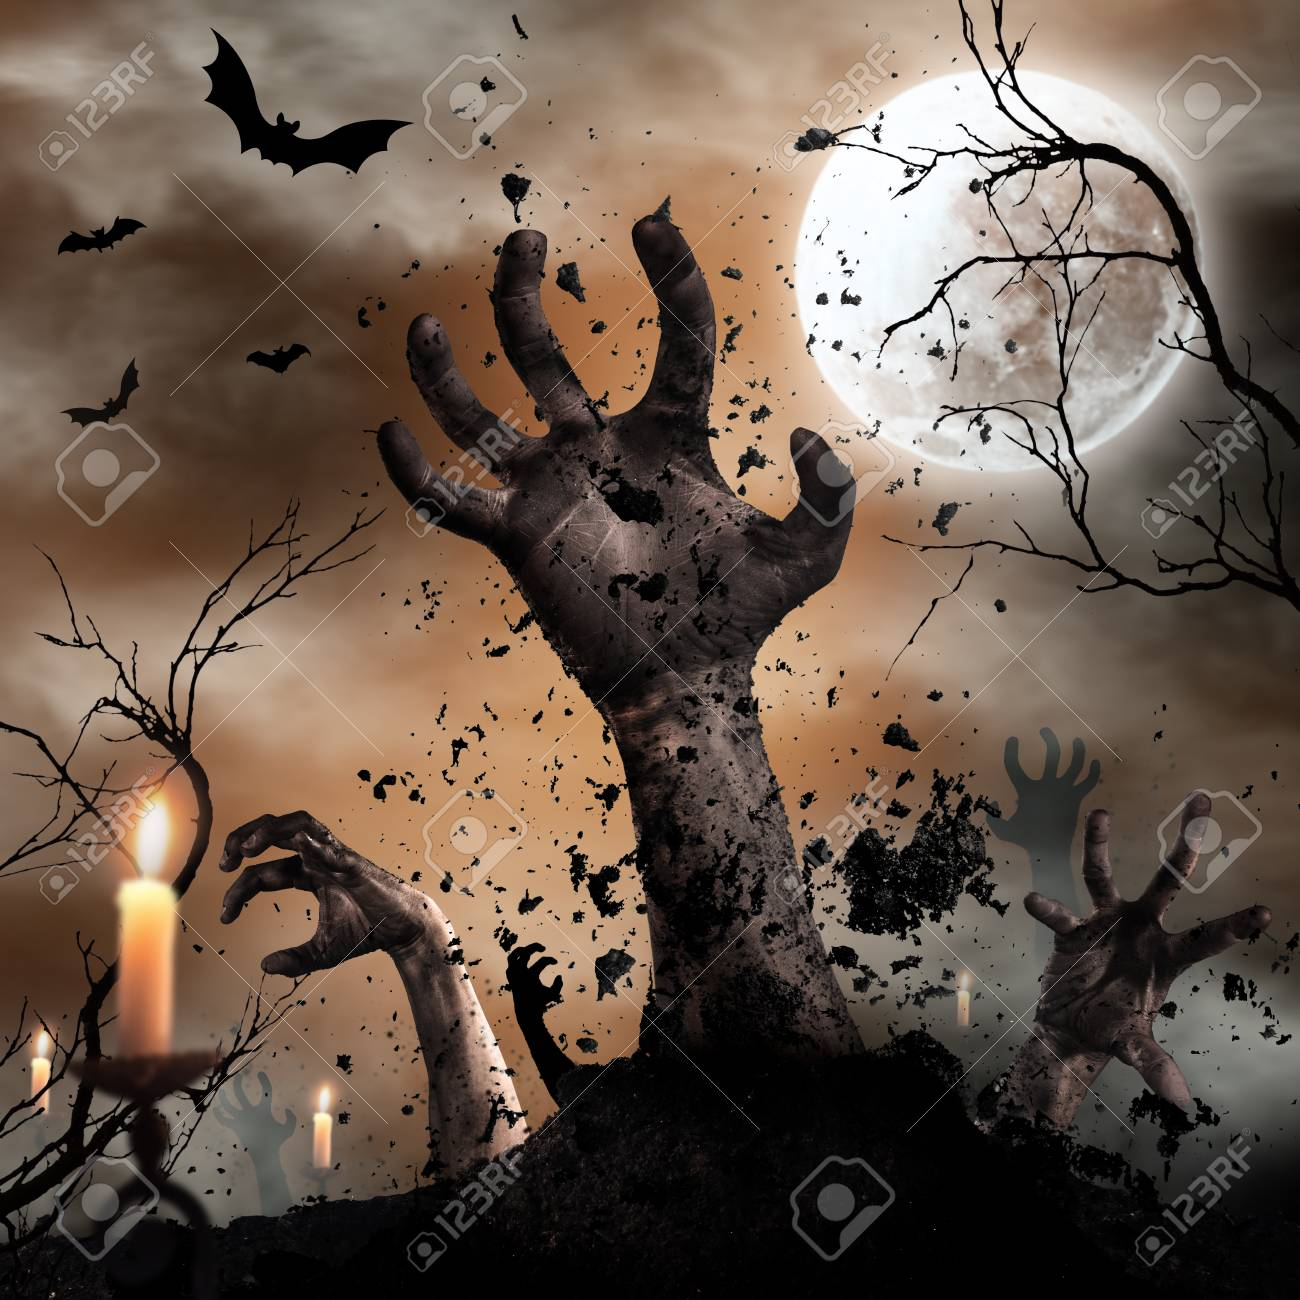 1300x1300 - Scary Halloween Background 5